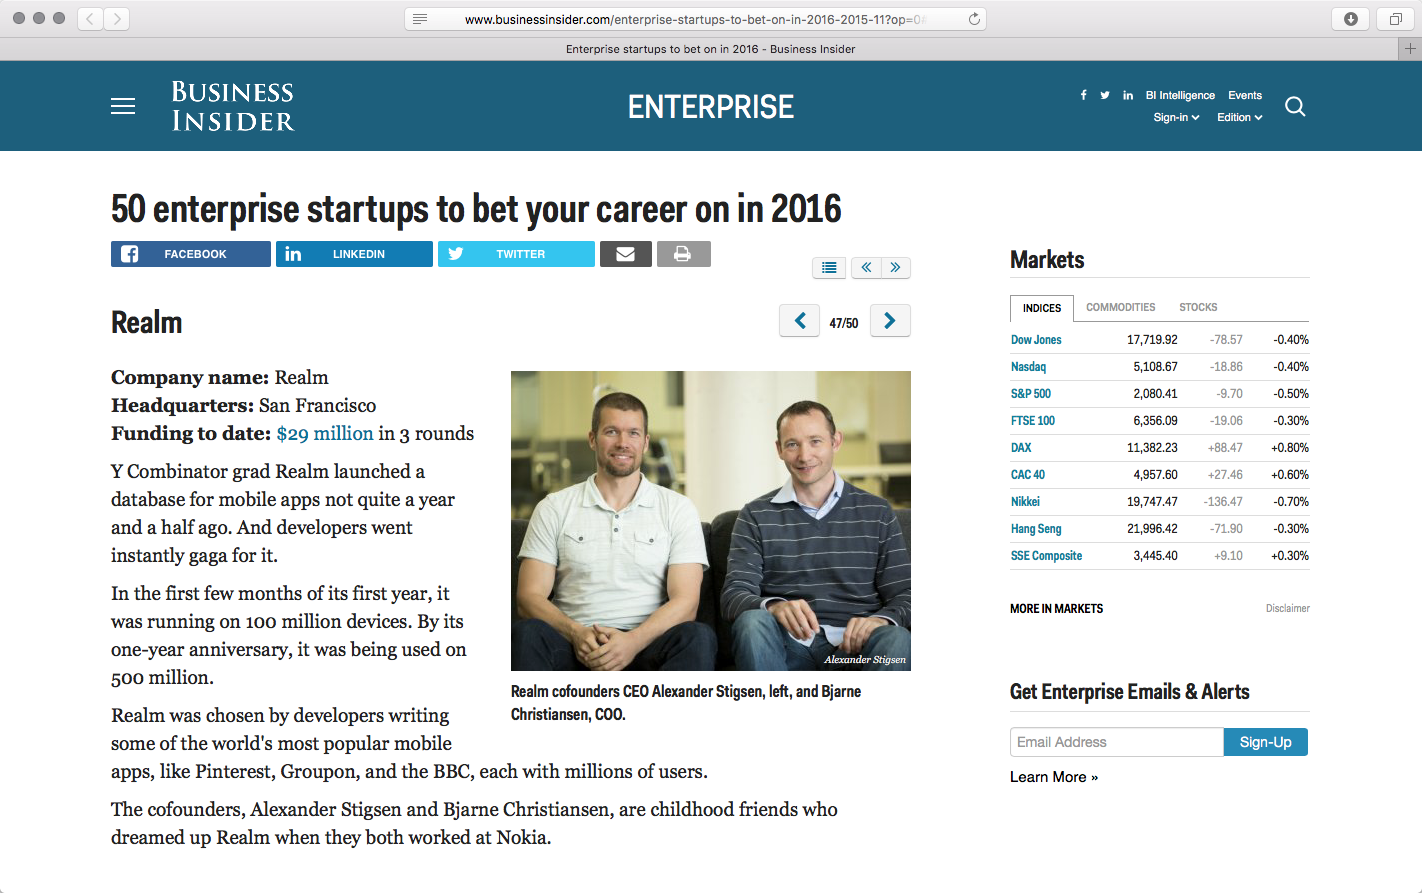 "Business Insider selects Realm as a startup to ""bet your career on in 2016."""